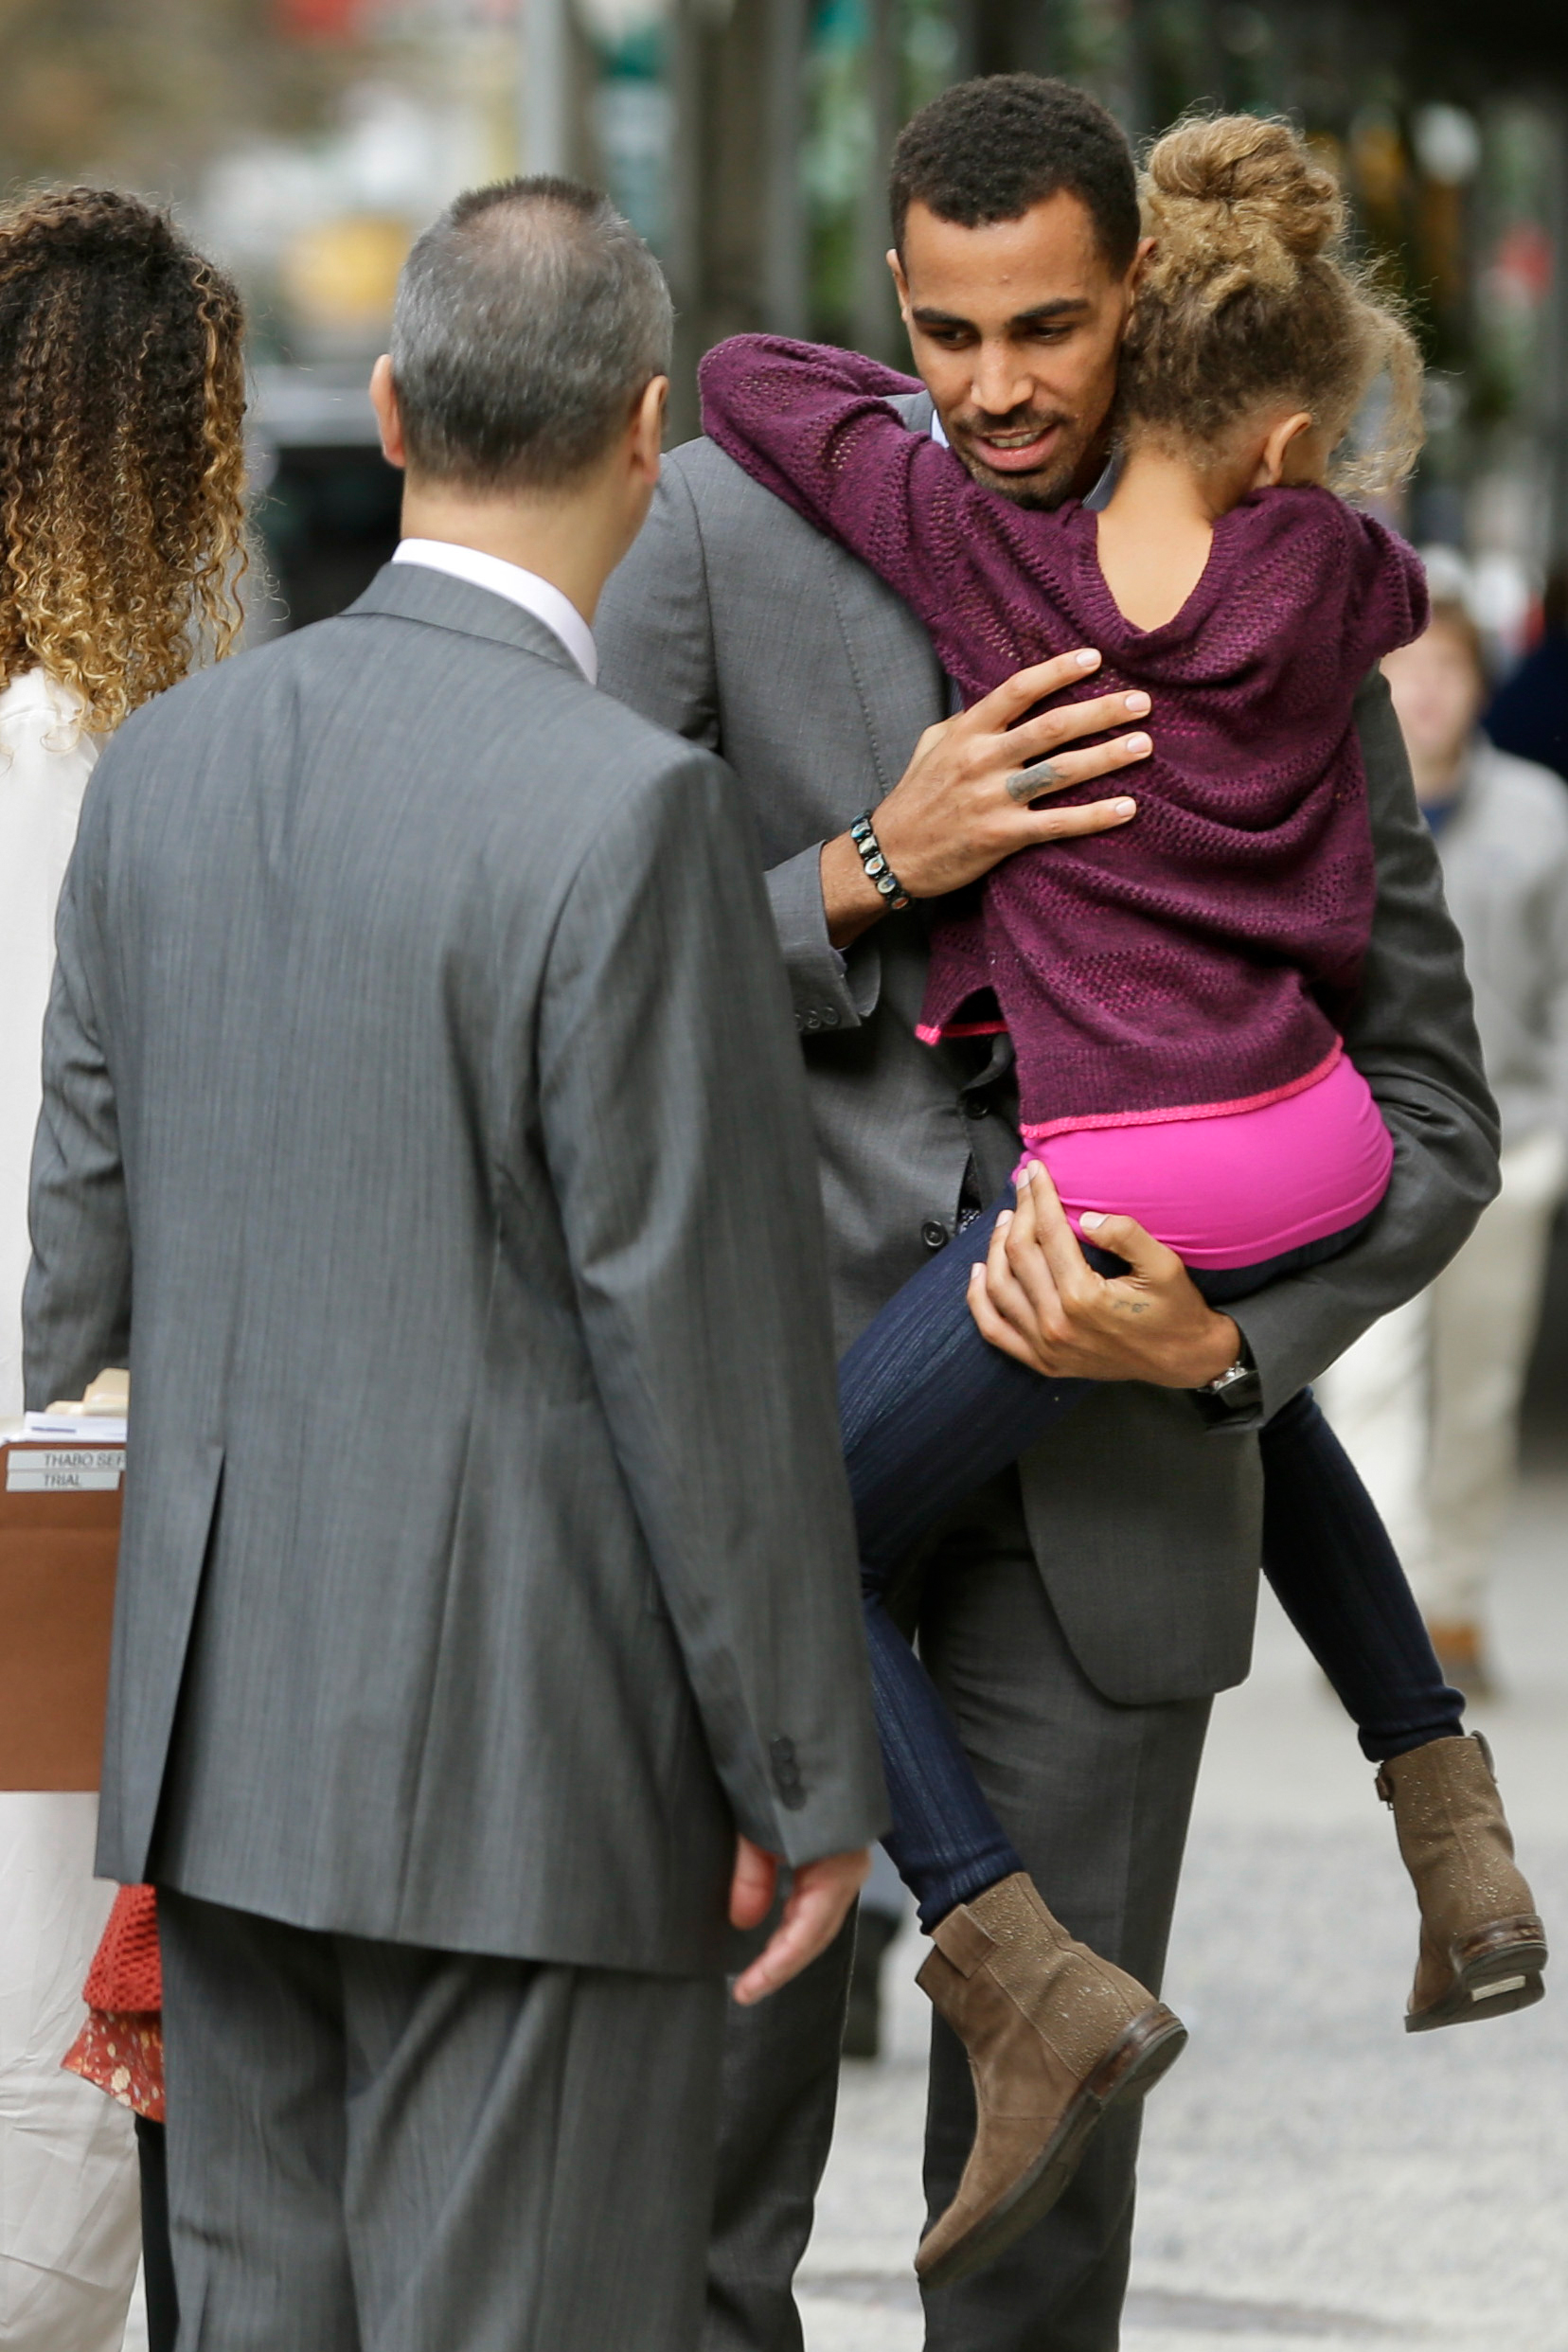 "The Atlanta Hawks' Thabo Sefolosha Thabo Sefolosha hugs a child before entering criminal court after a lunch break in New York, Thursday, Oct. 8, 2015. An NBA head coach has testified that the character of Sefolosha, a professional basketball player and Swiss national on trial after a confrontation with New York City police, is ""of the highest order."" The case stems from a struggle outside the 1Oak nightclub in Chelsea after Indiana Pacers forward Chris Copeland and two women were stabbed."